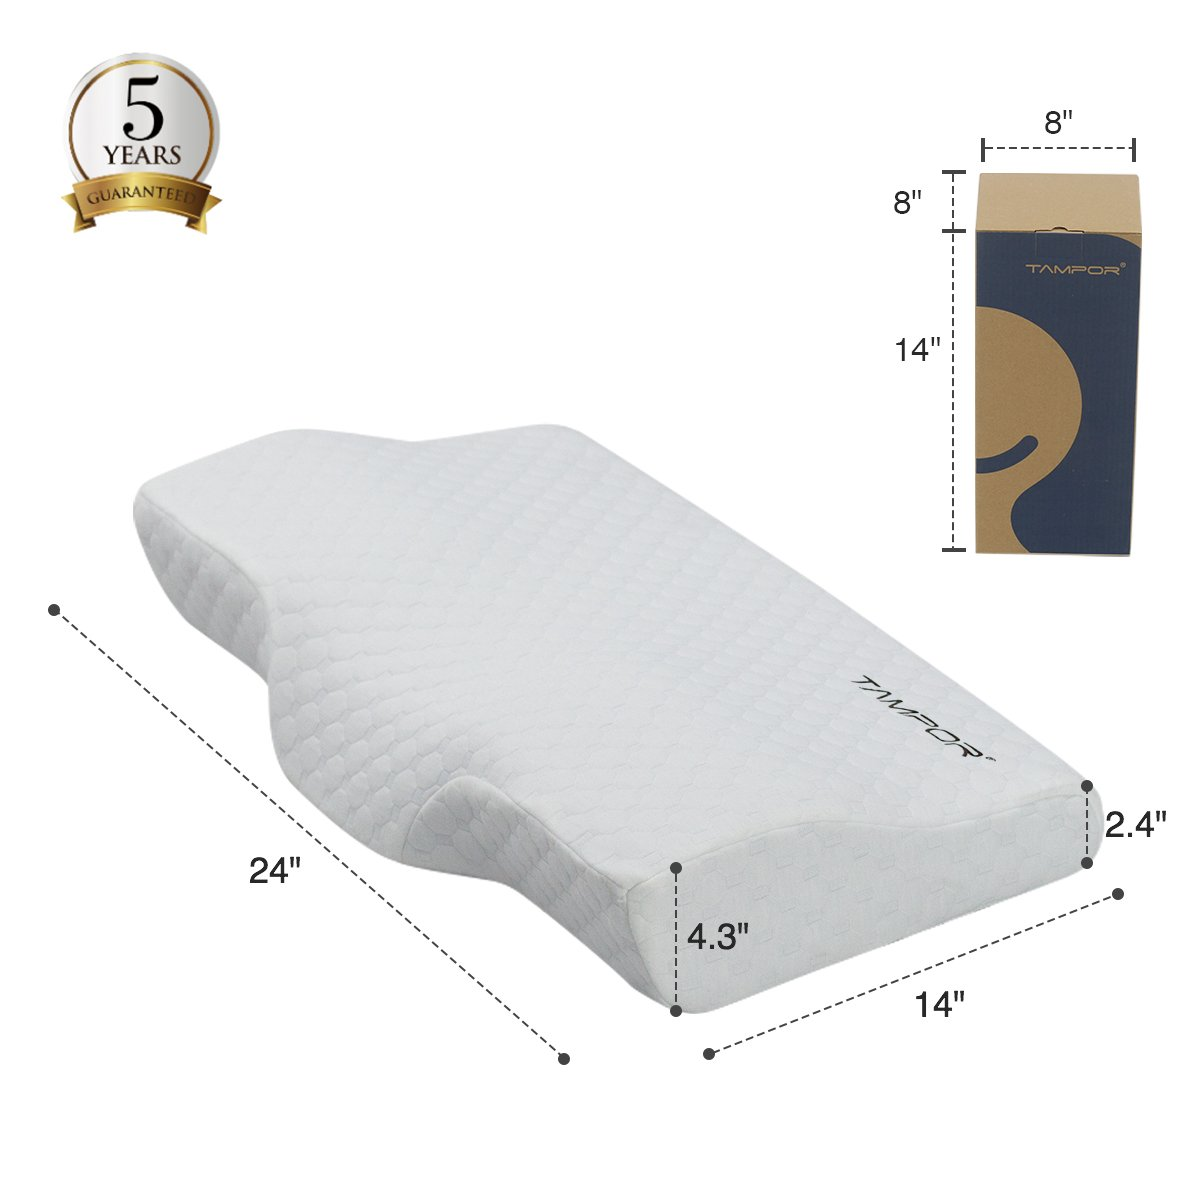 """Memory Foam Pillow Bamboo Charcoal Contour Pillow, Extra Gift Pillow Case, Hypoallergenic Ergonomic Neck Pillow for Neck Support by TAMPOR, Standard 24""""x14""""x4.3"""""""